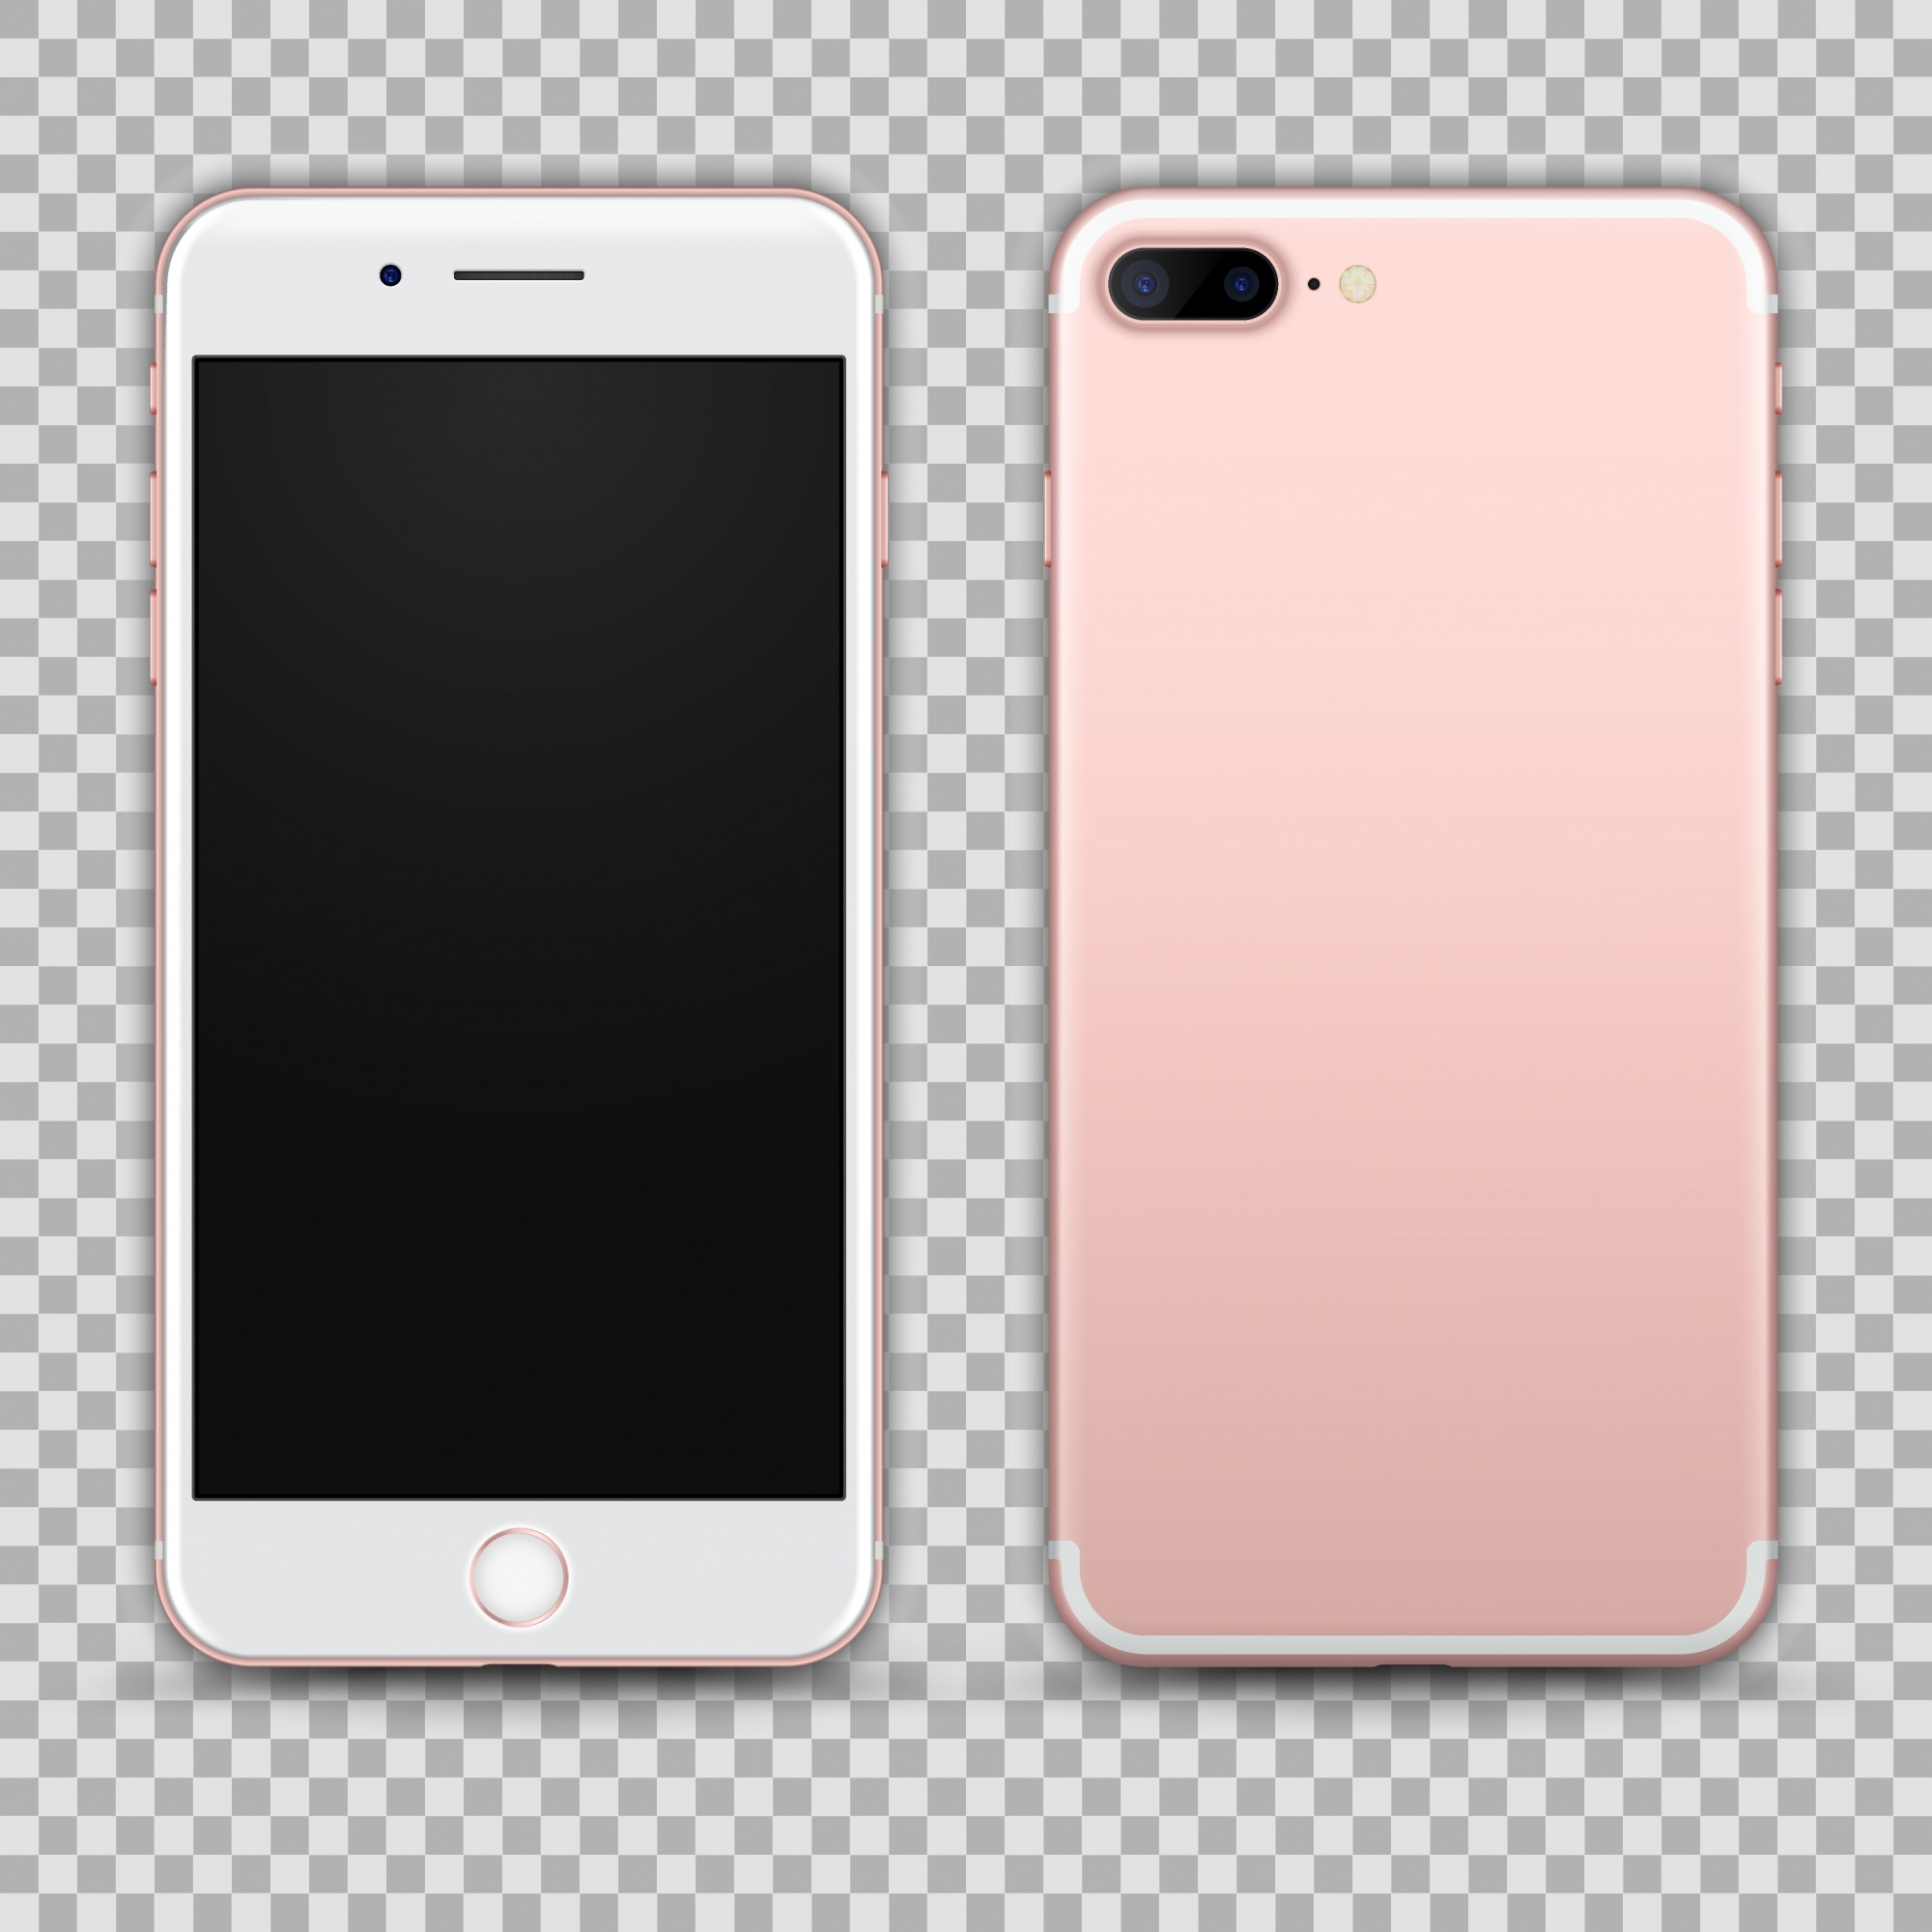 Realistic Rosegold Smartphone isolated on Transparent Background. Front and Back View